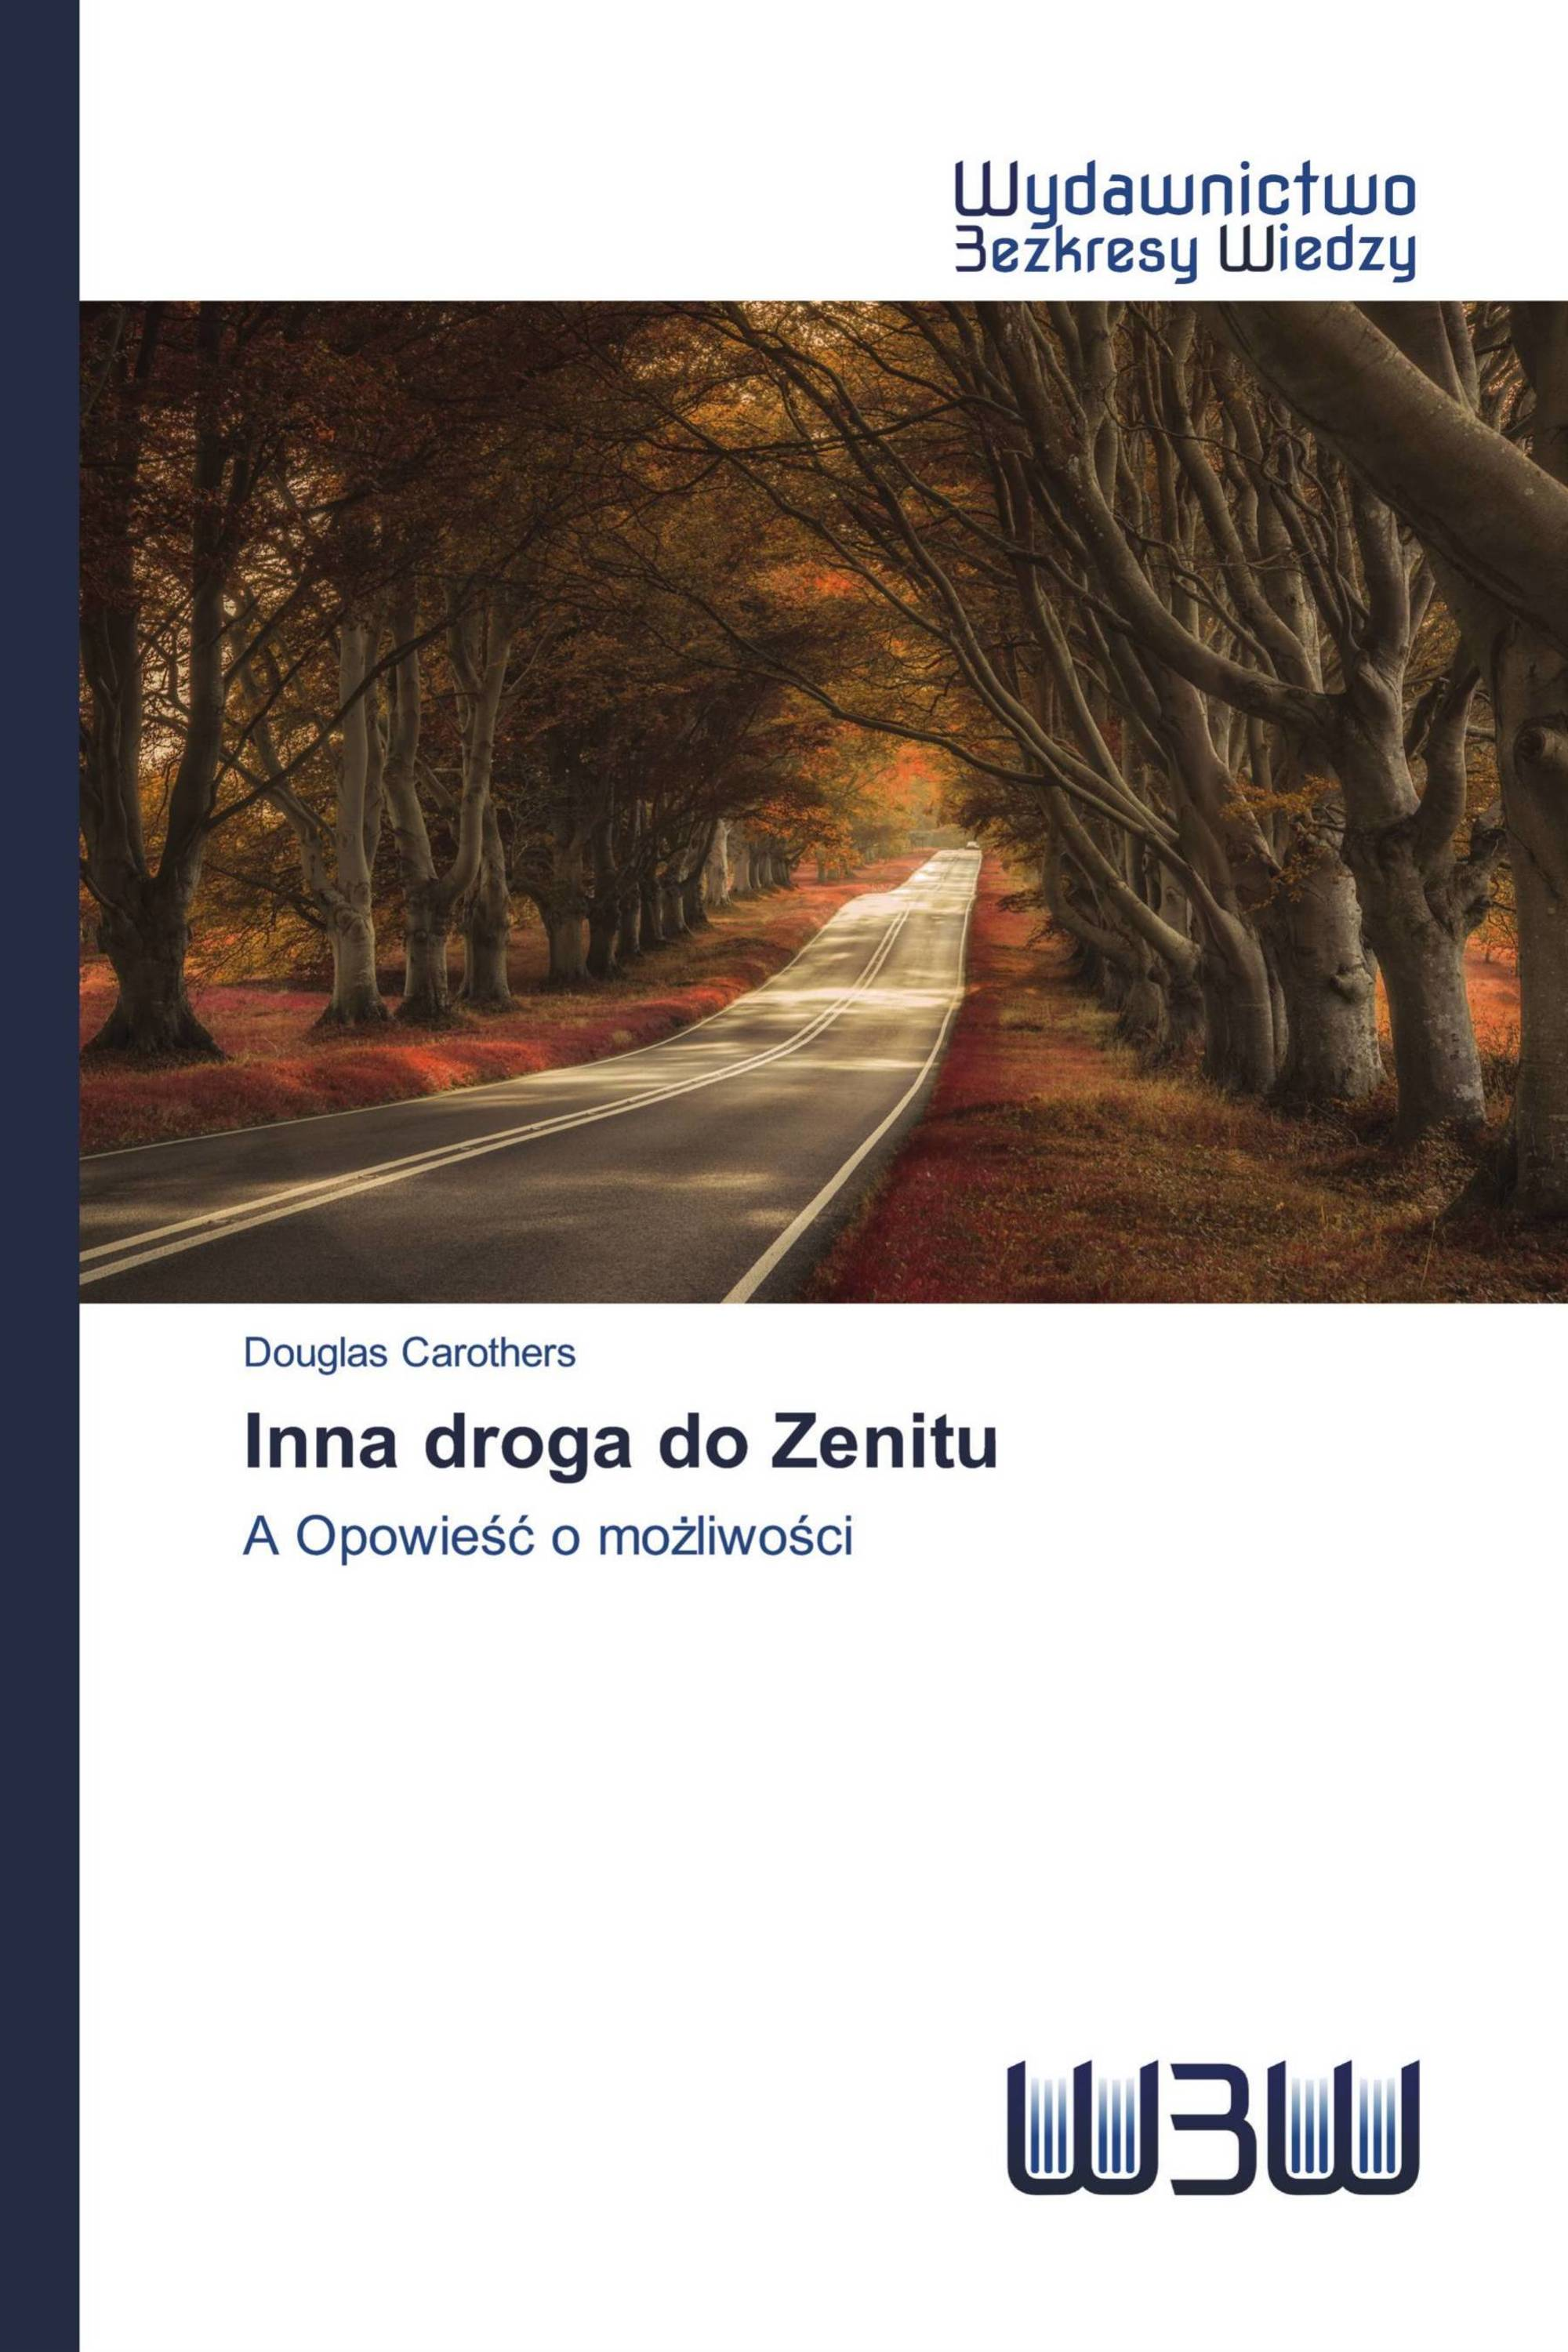 Inna droga do Zenitu